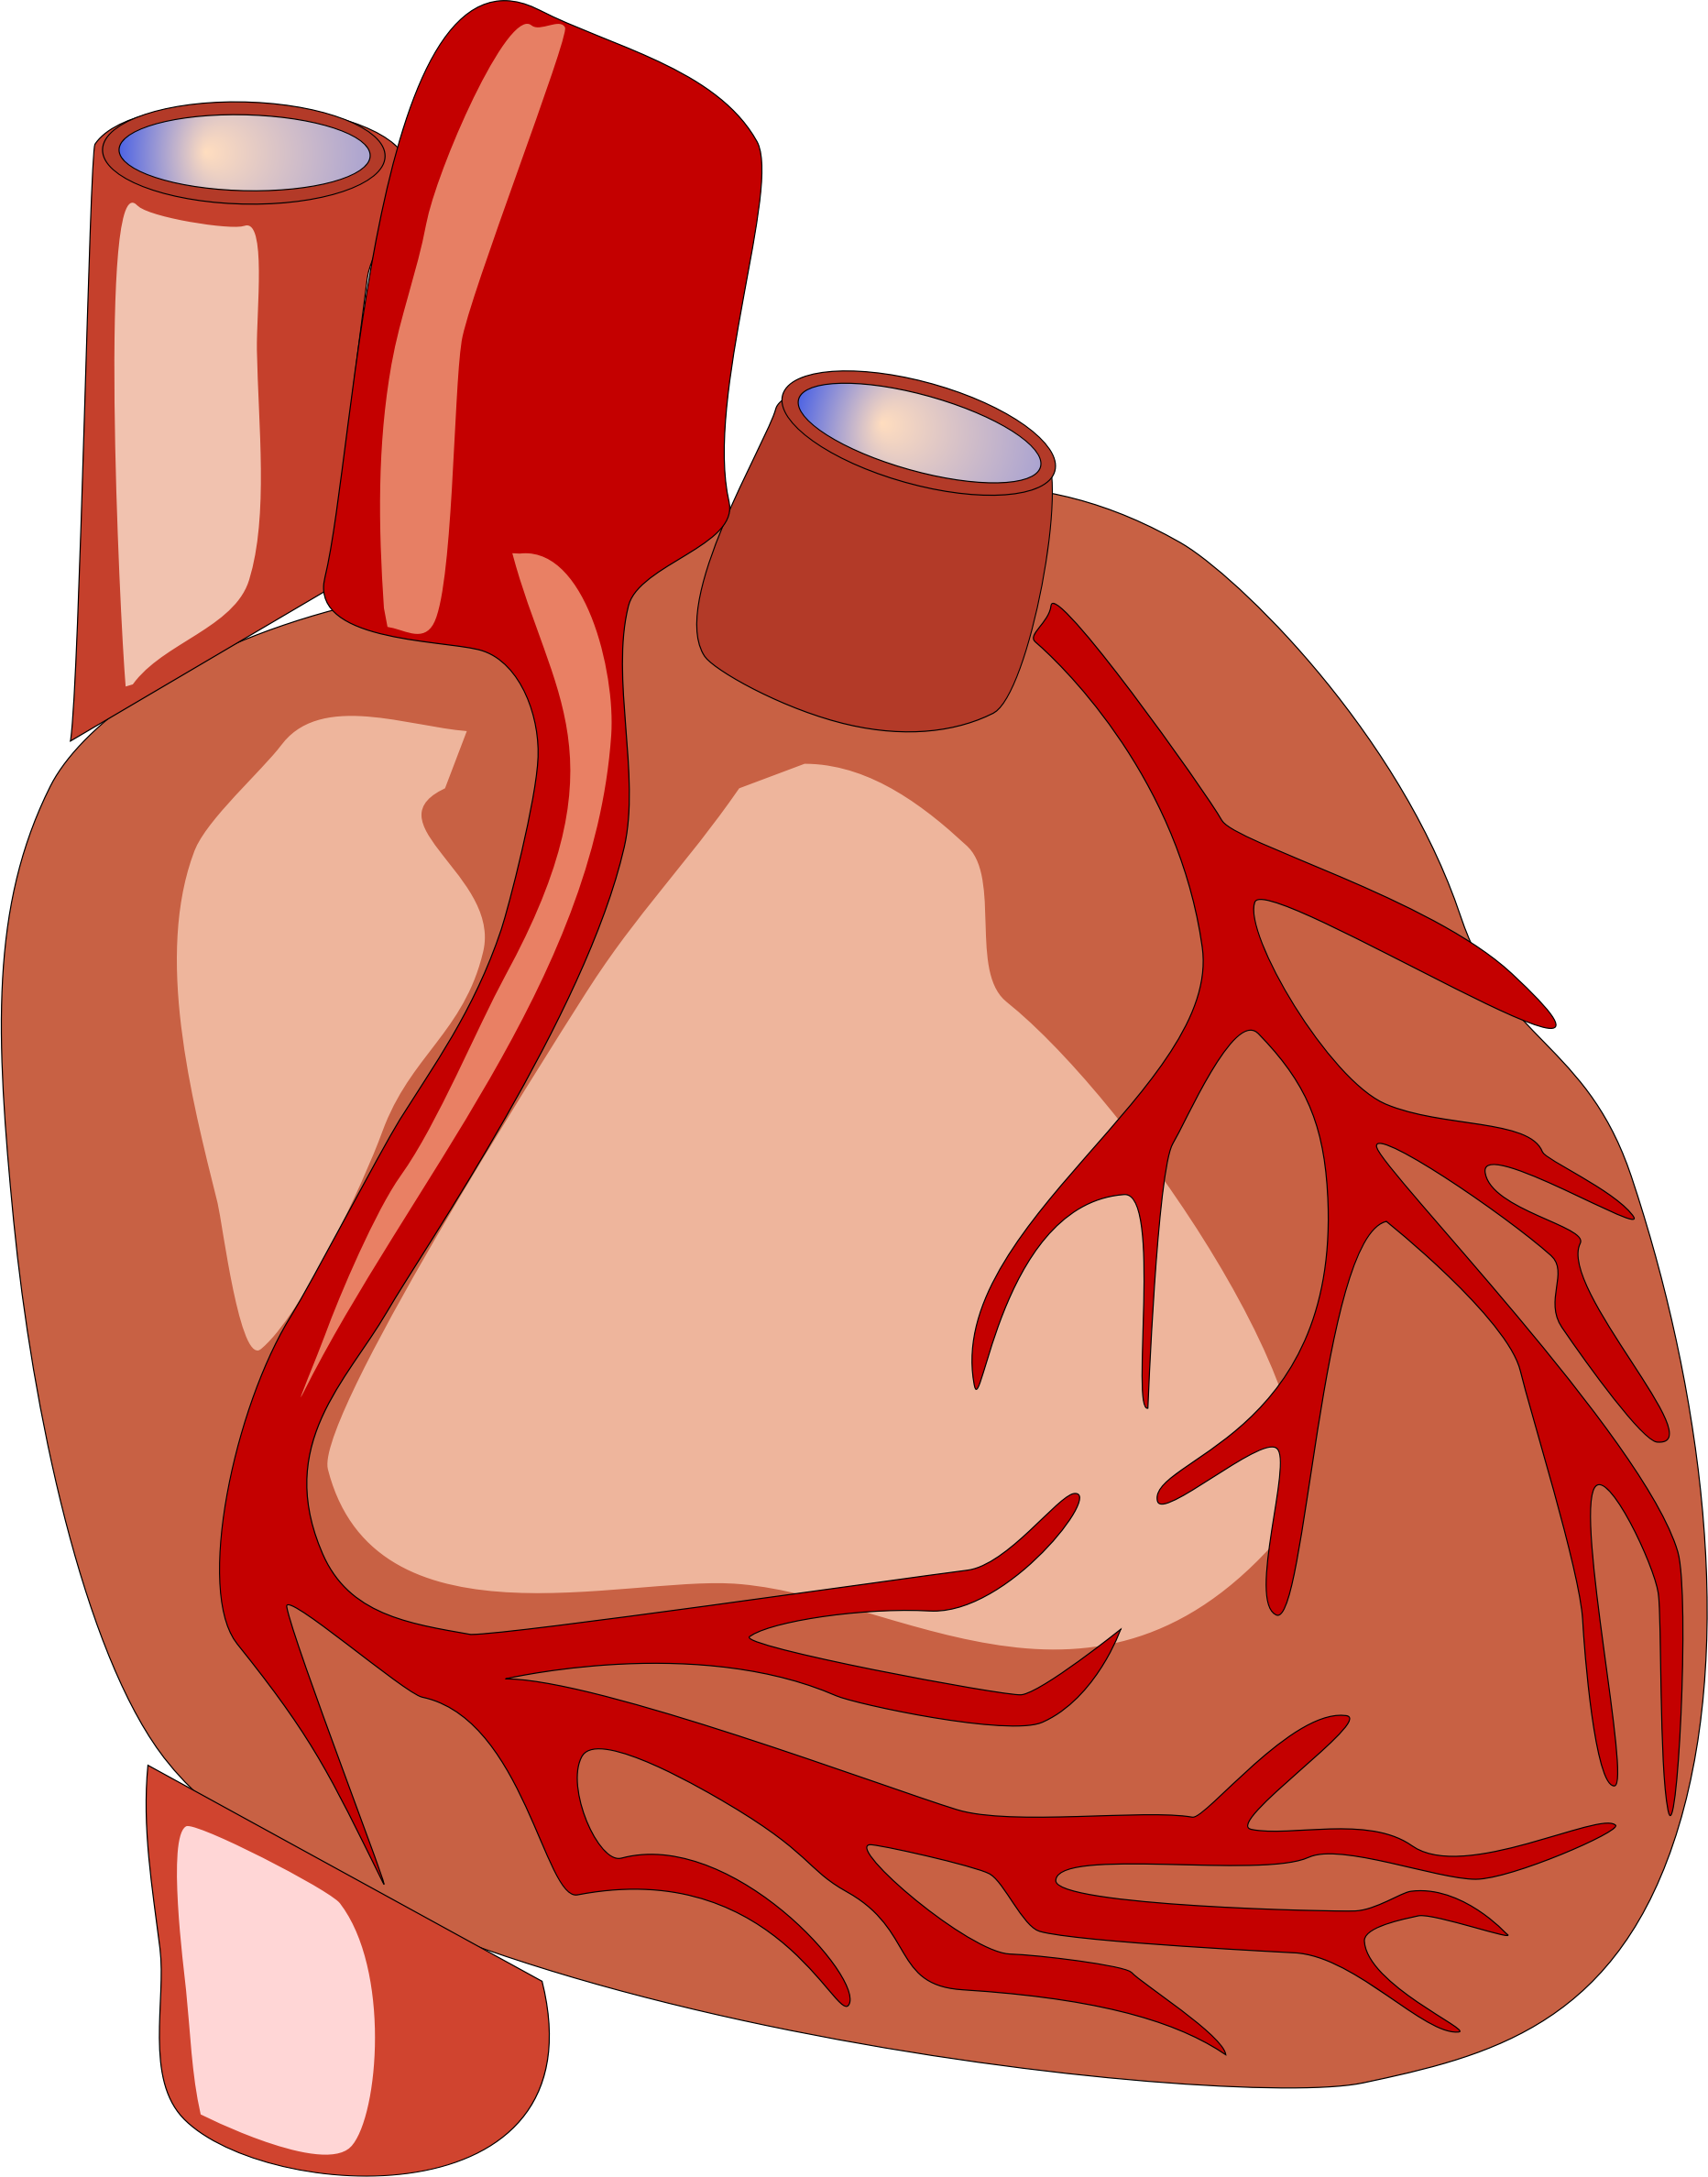 1864x2376 Human Heart Vector File Image